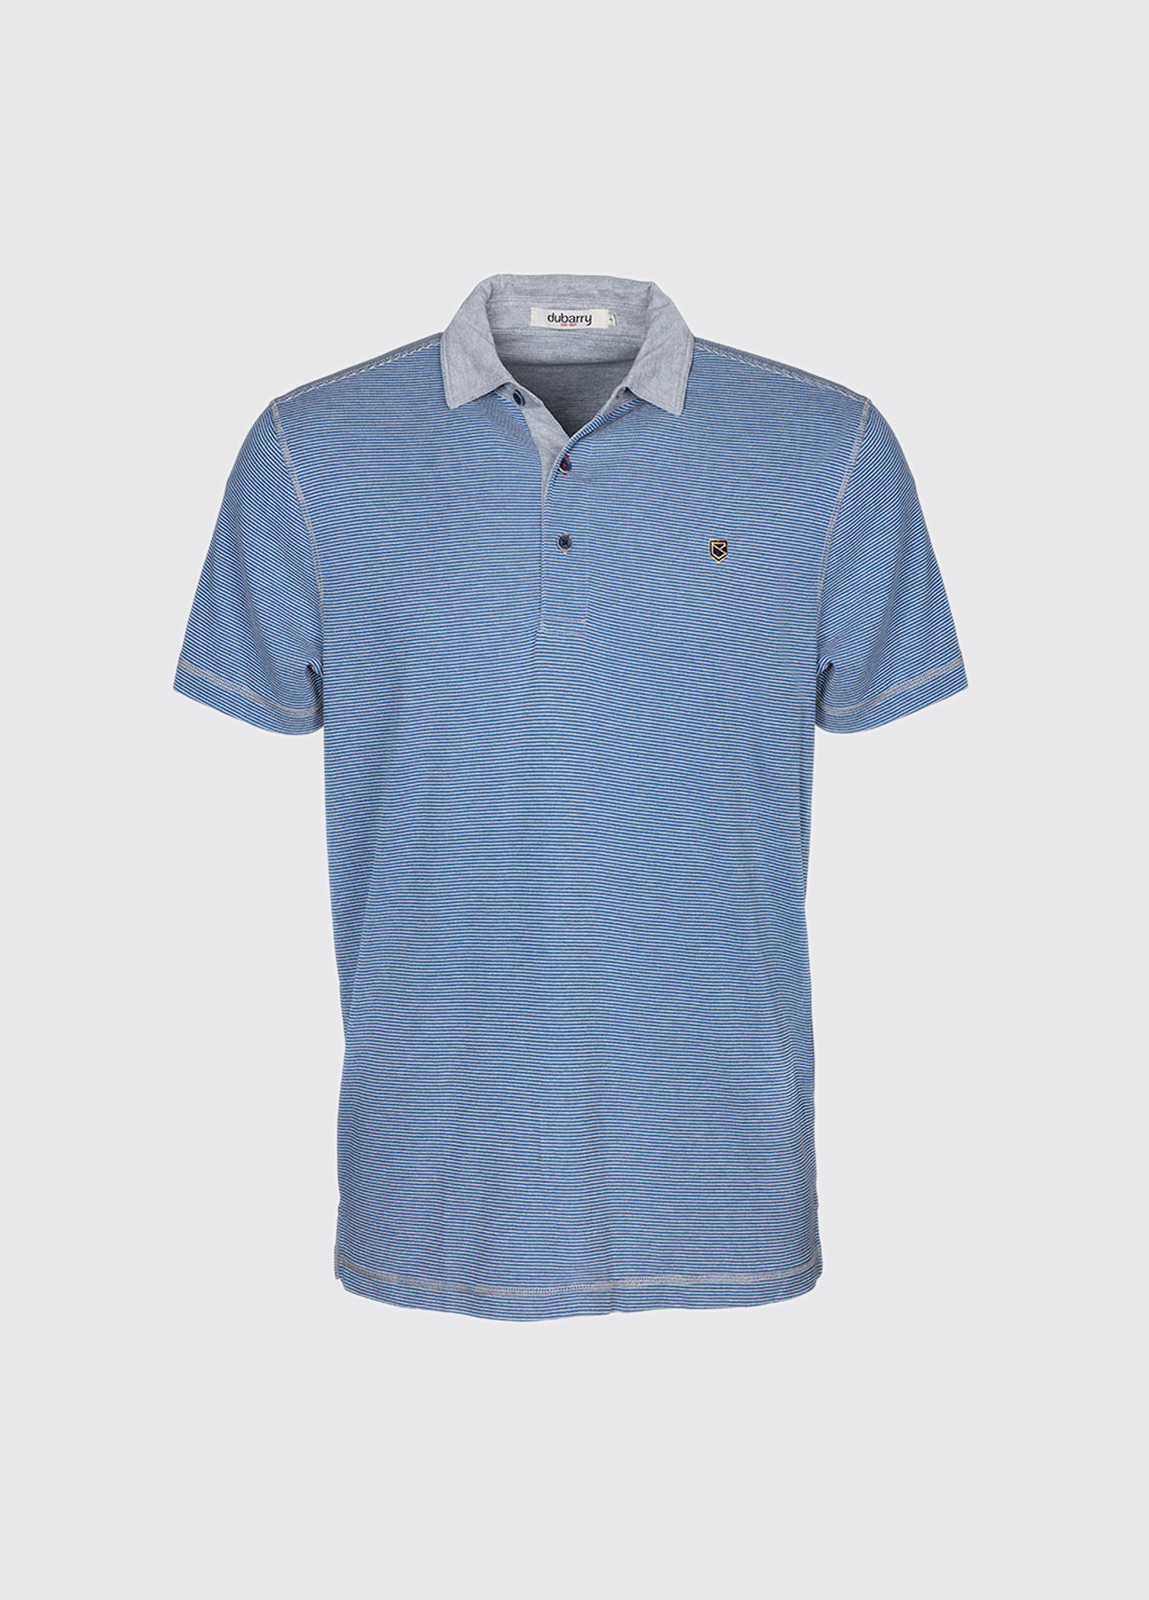 Drumcliff Polo Shirt - Denim